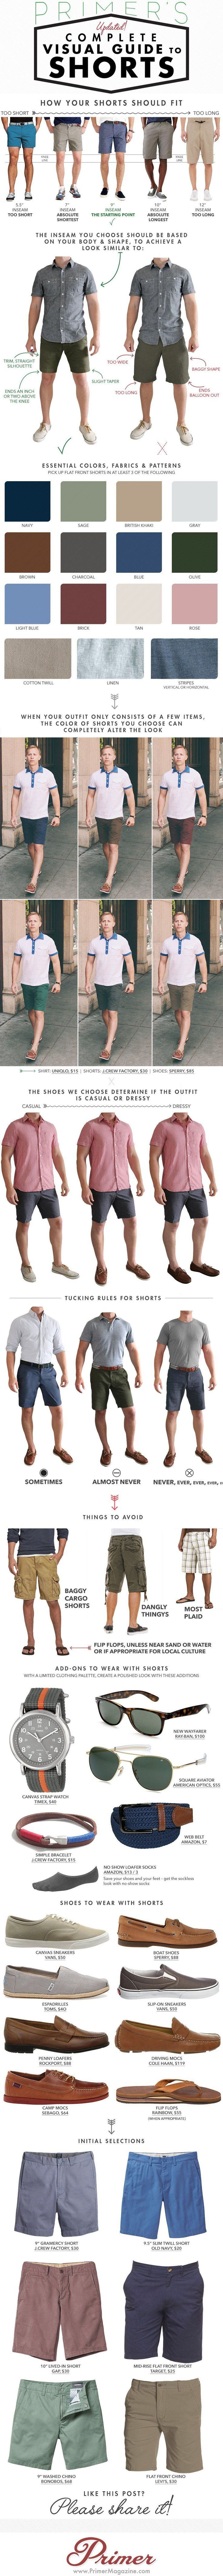 Stay cool and look smart this summer with our complete visual guide for all things shorts, covering fit and fabric to shoes and accessories.